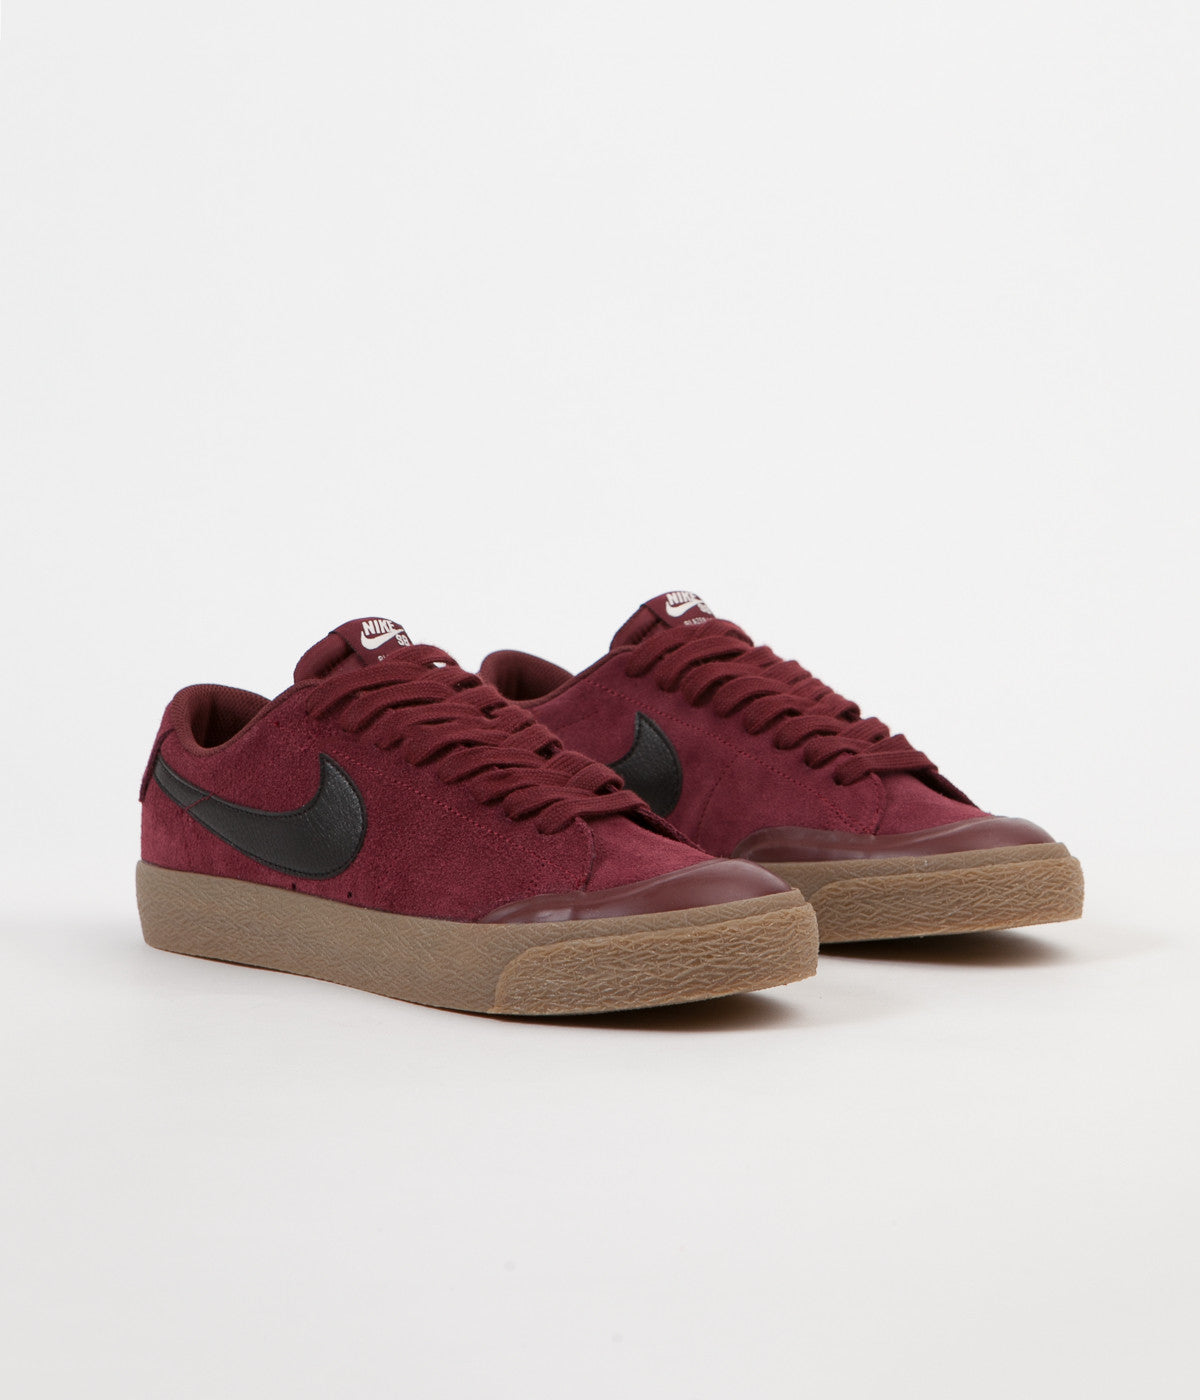 ... Nike SB Blazer Low XT Shoes - Dark Team Red / Black - Gum Light Brown  ...